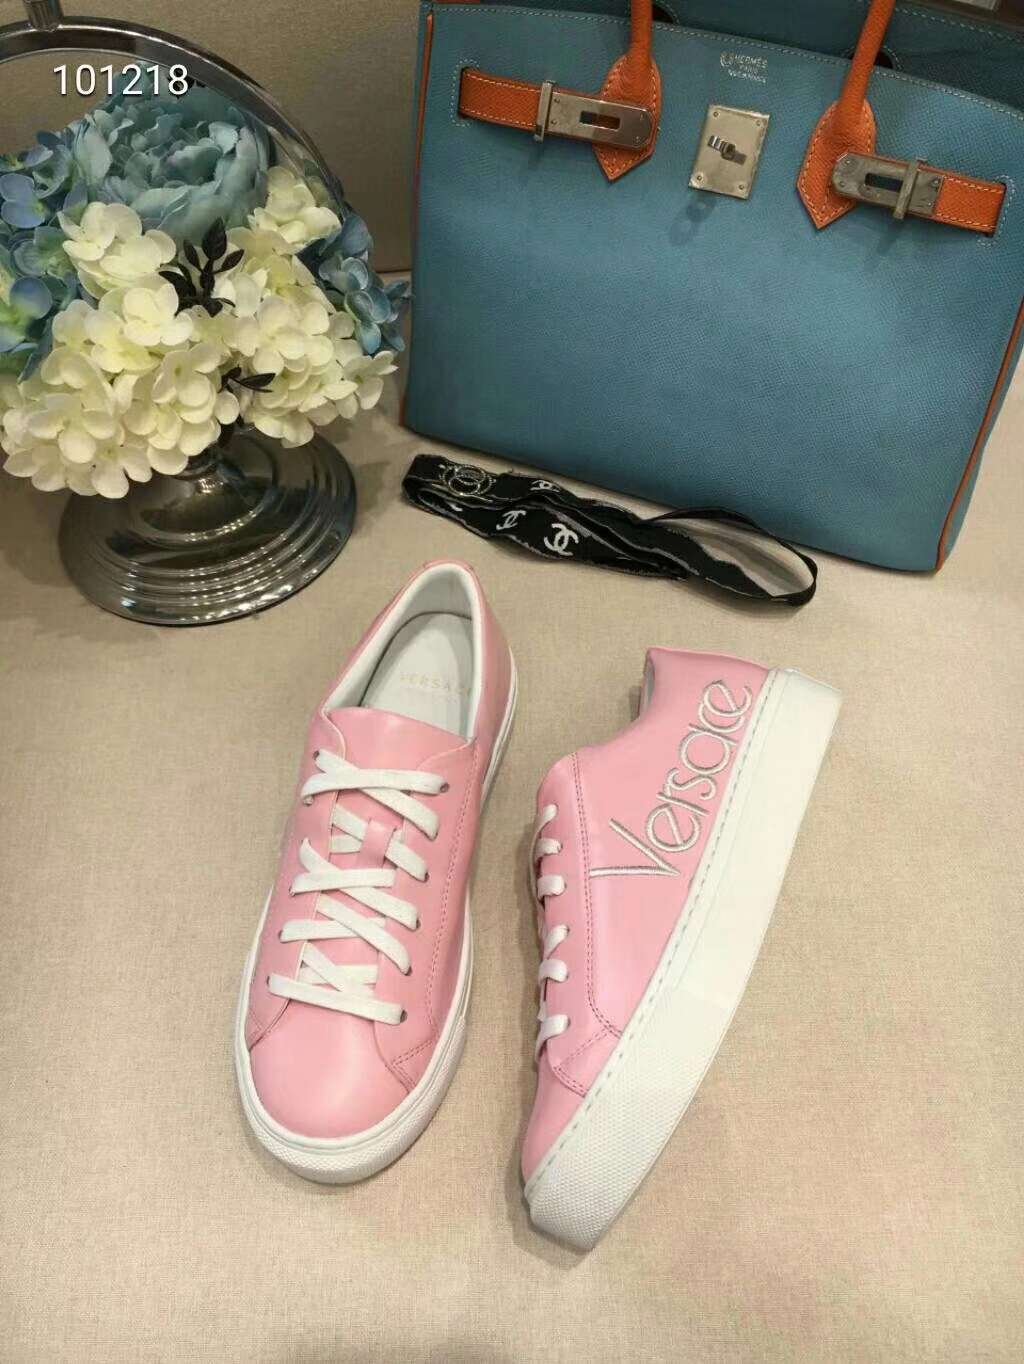 2019 NEW Versace Real leather shoes VERSACE101218pink